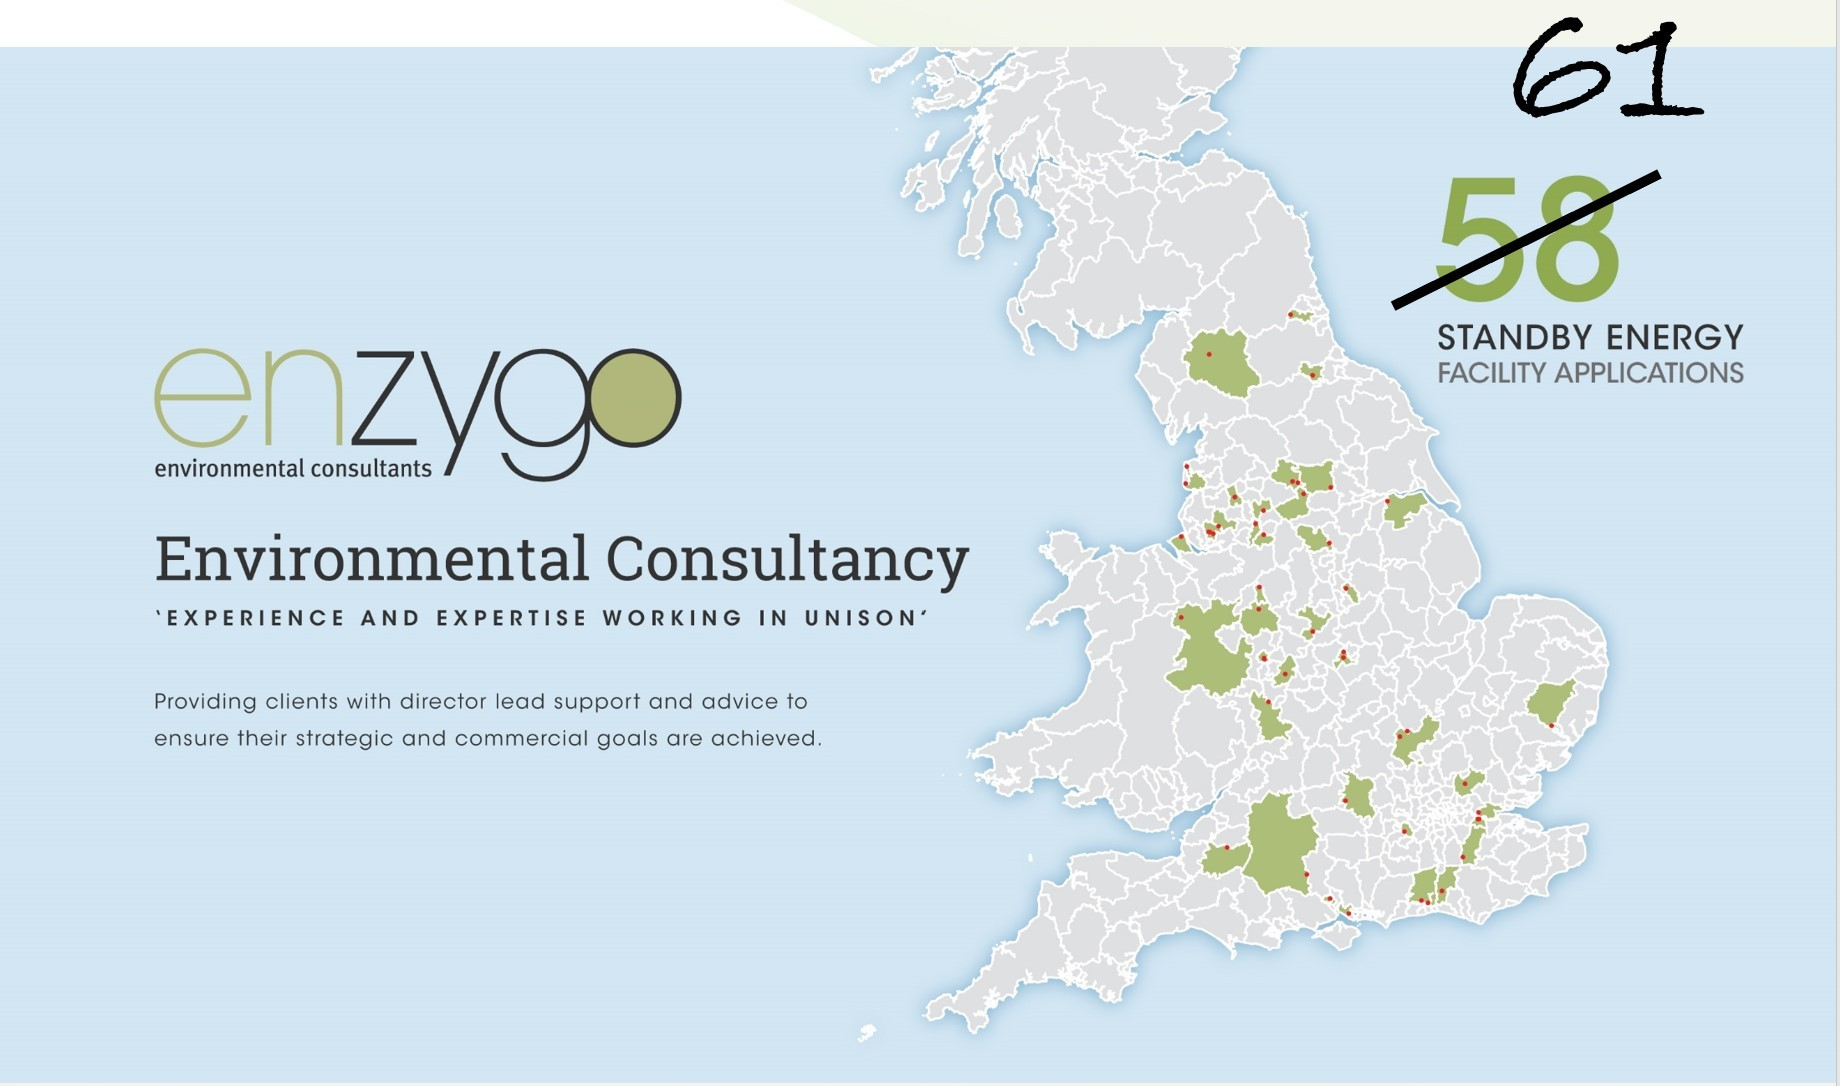 enzygo 61 standby energy facility applications